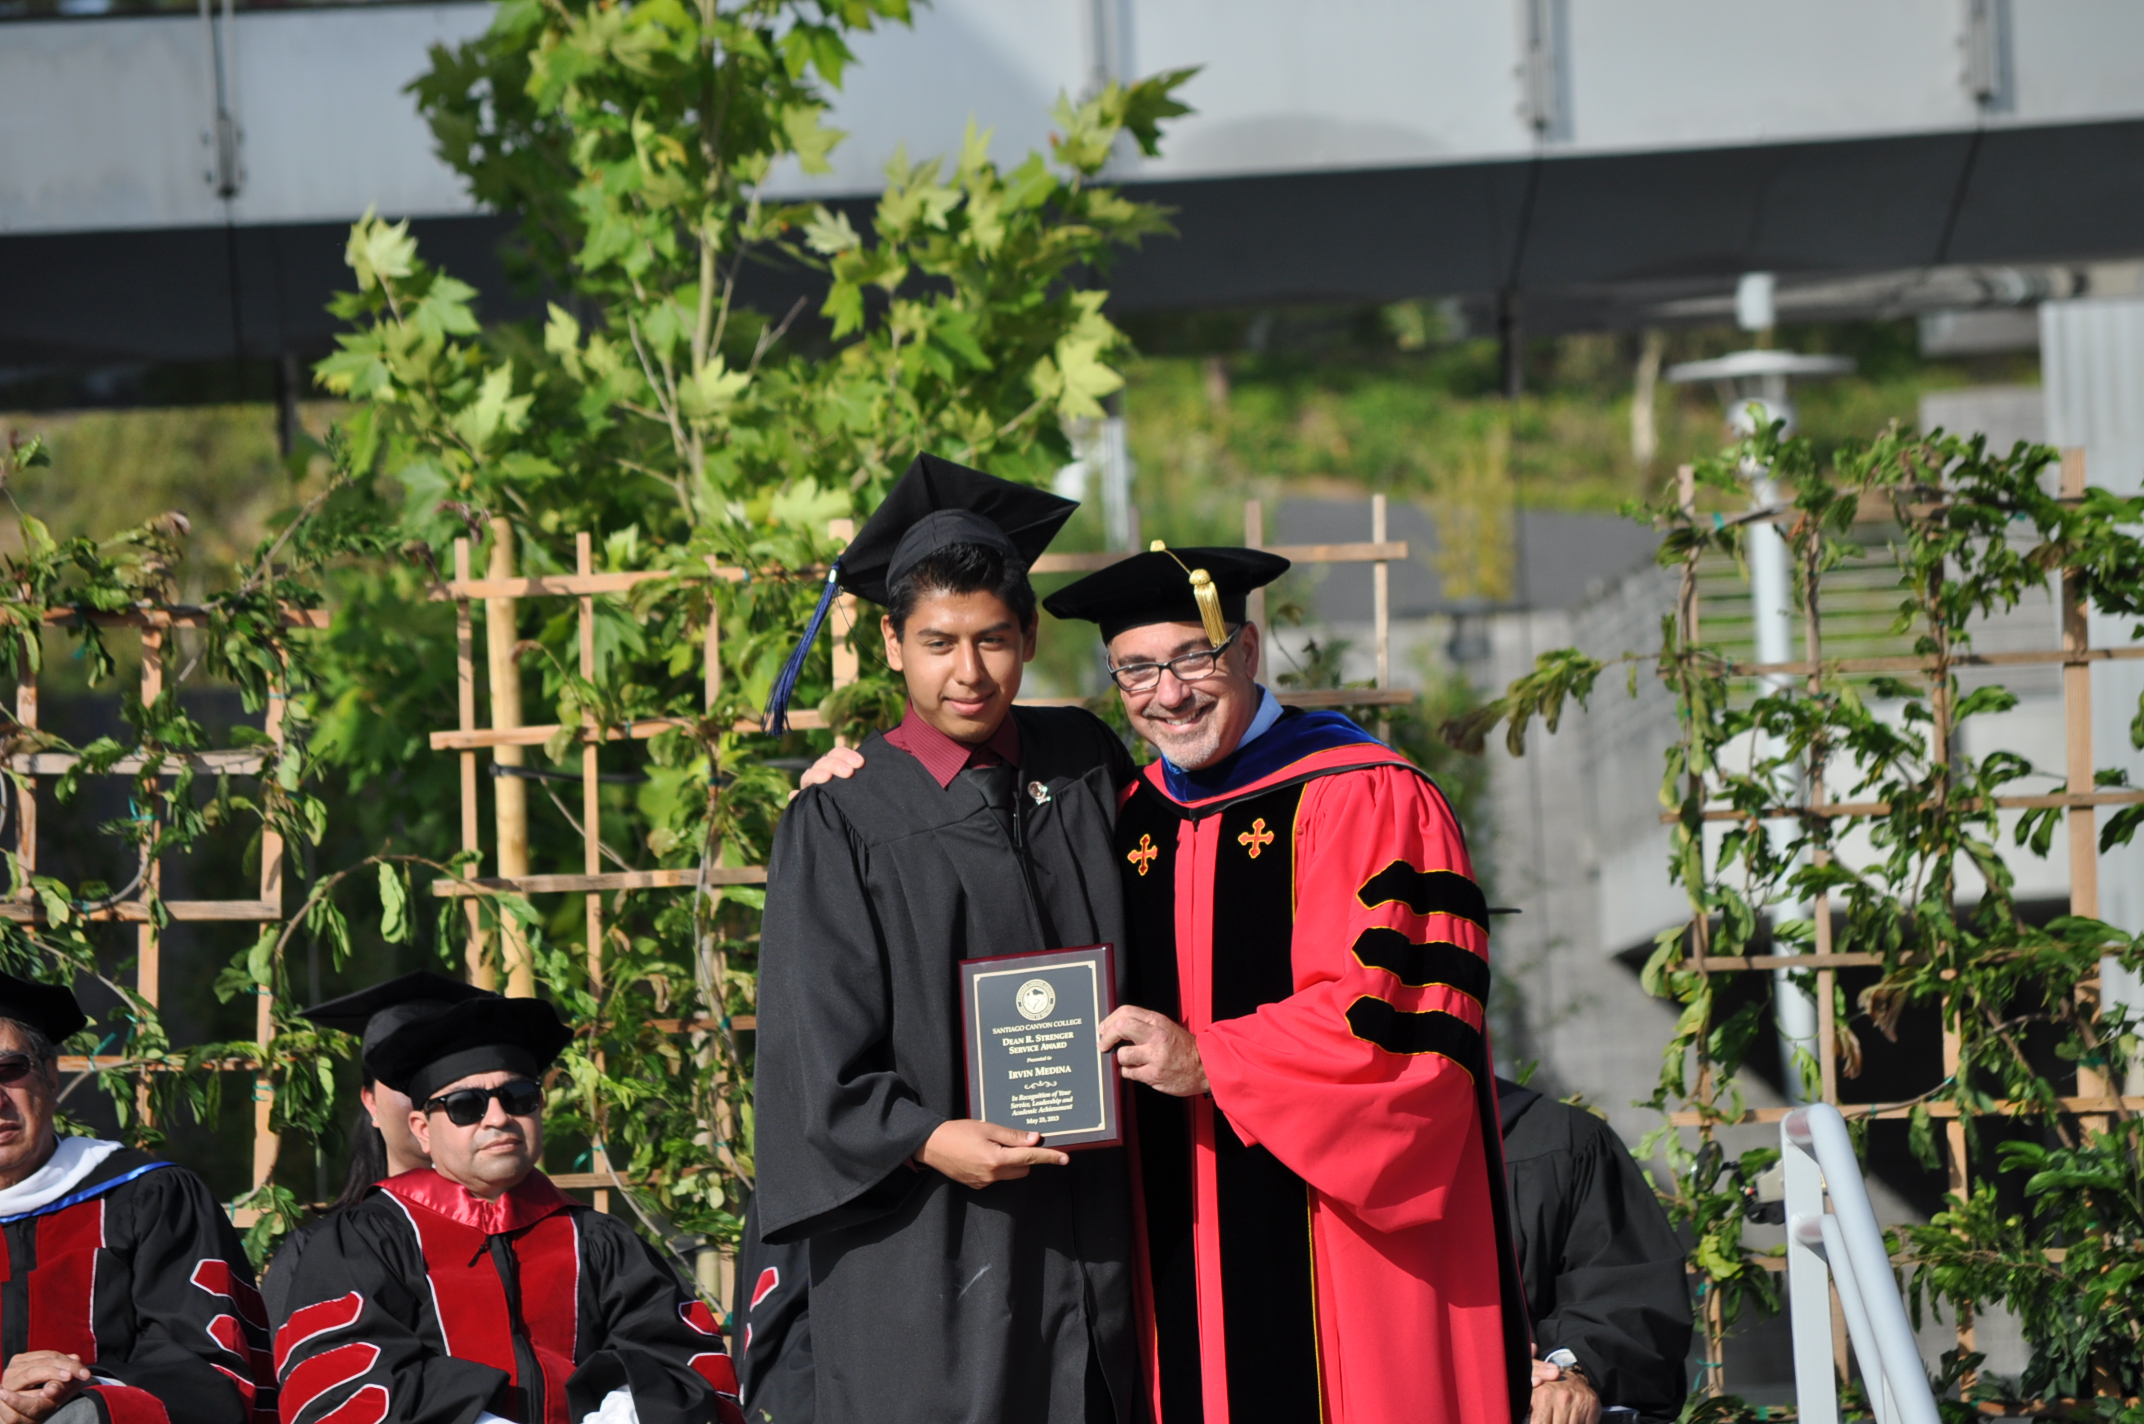 Irvin Medina (Class 2013 with Dr. John Hernandez recieving the Dean R. Strenger Service Award)